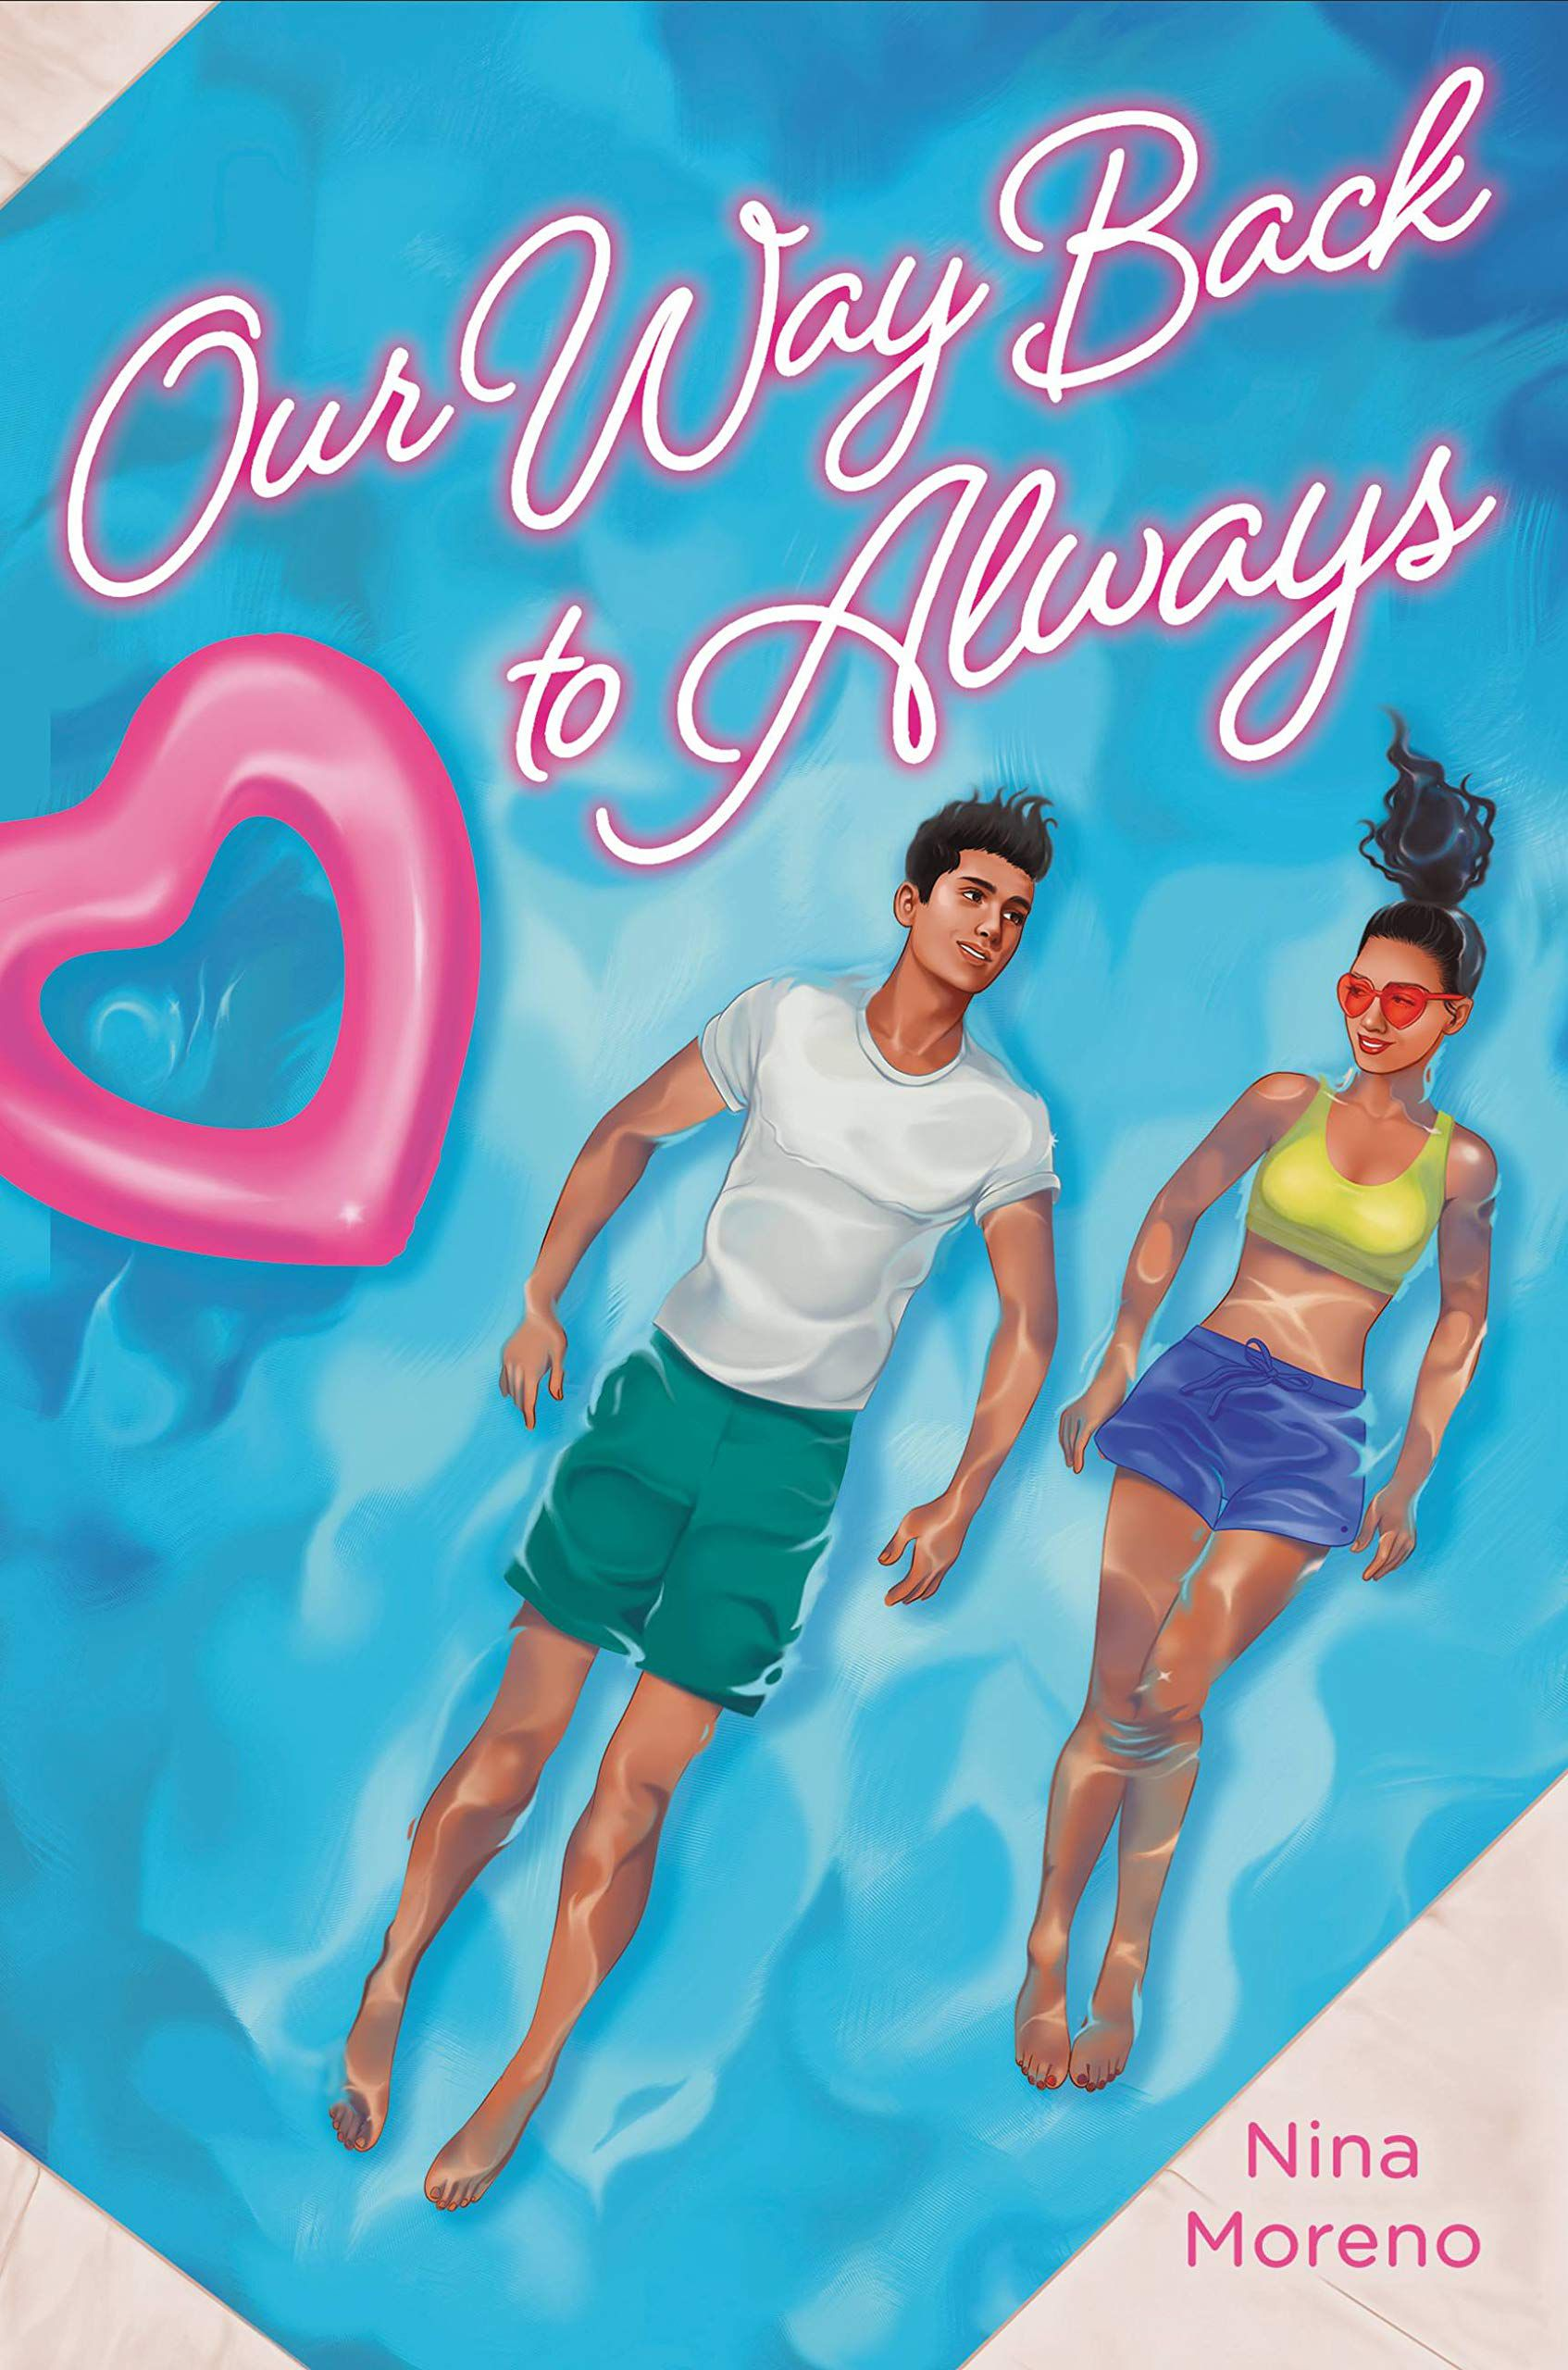 Our Way Back to Always by Nina Moreno book cover